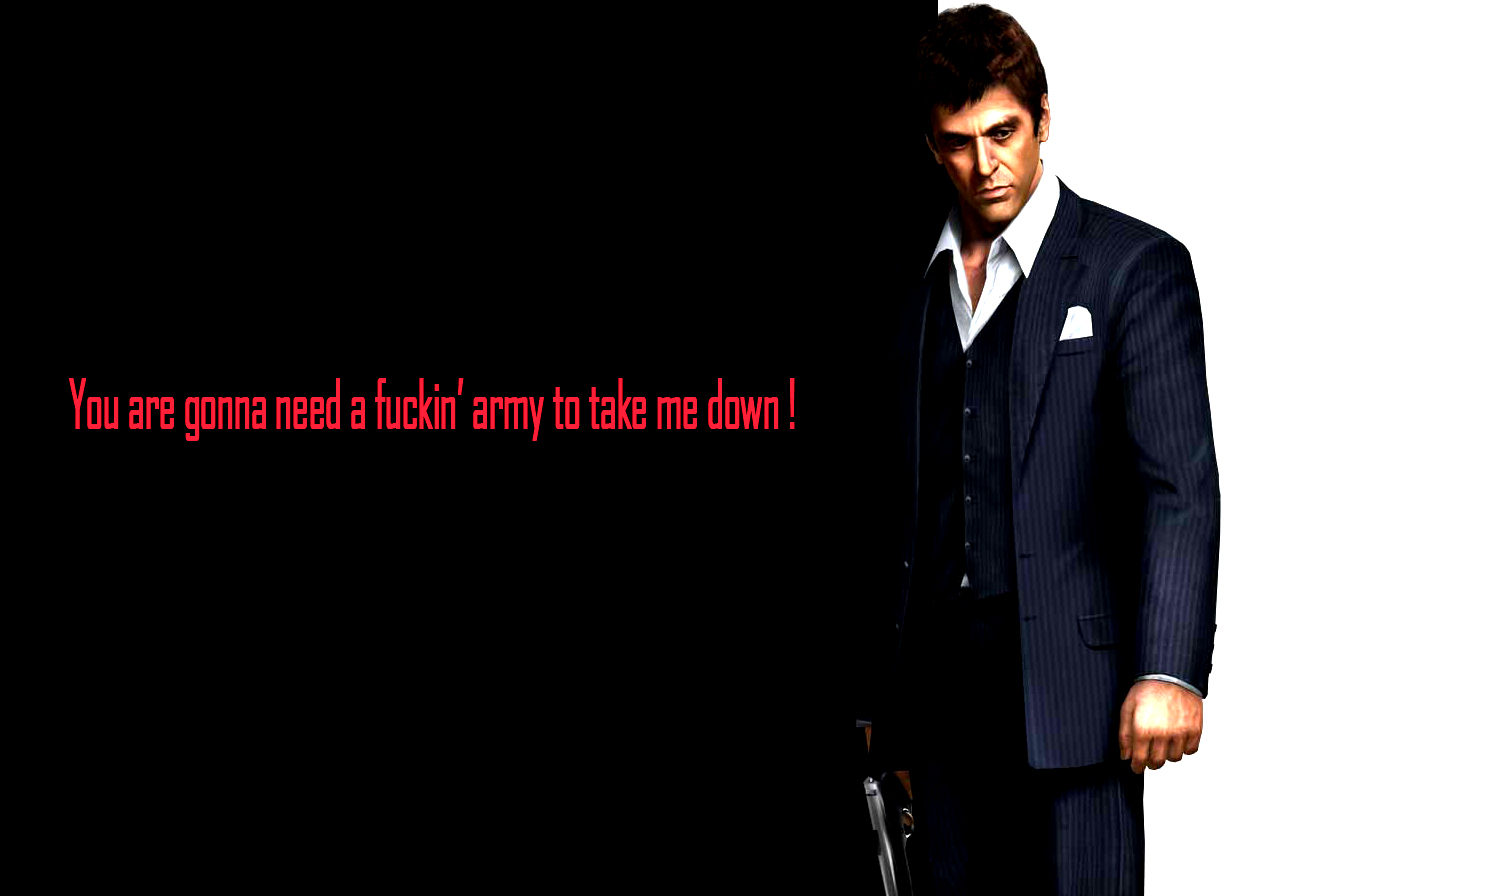 scarface wallpaper quotes pictures - photo #34